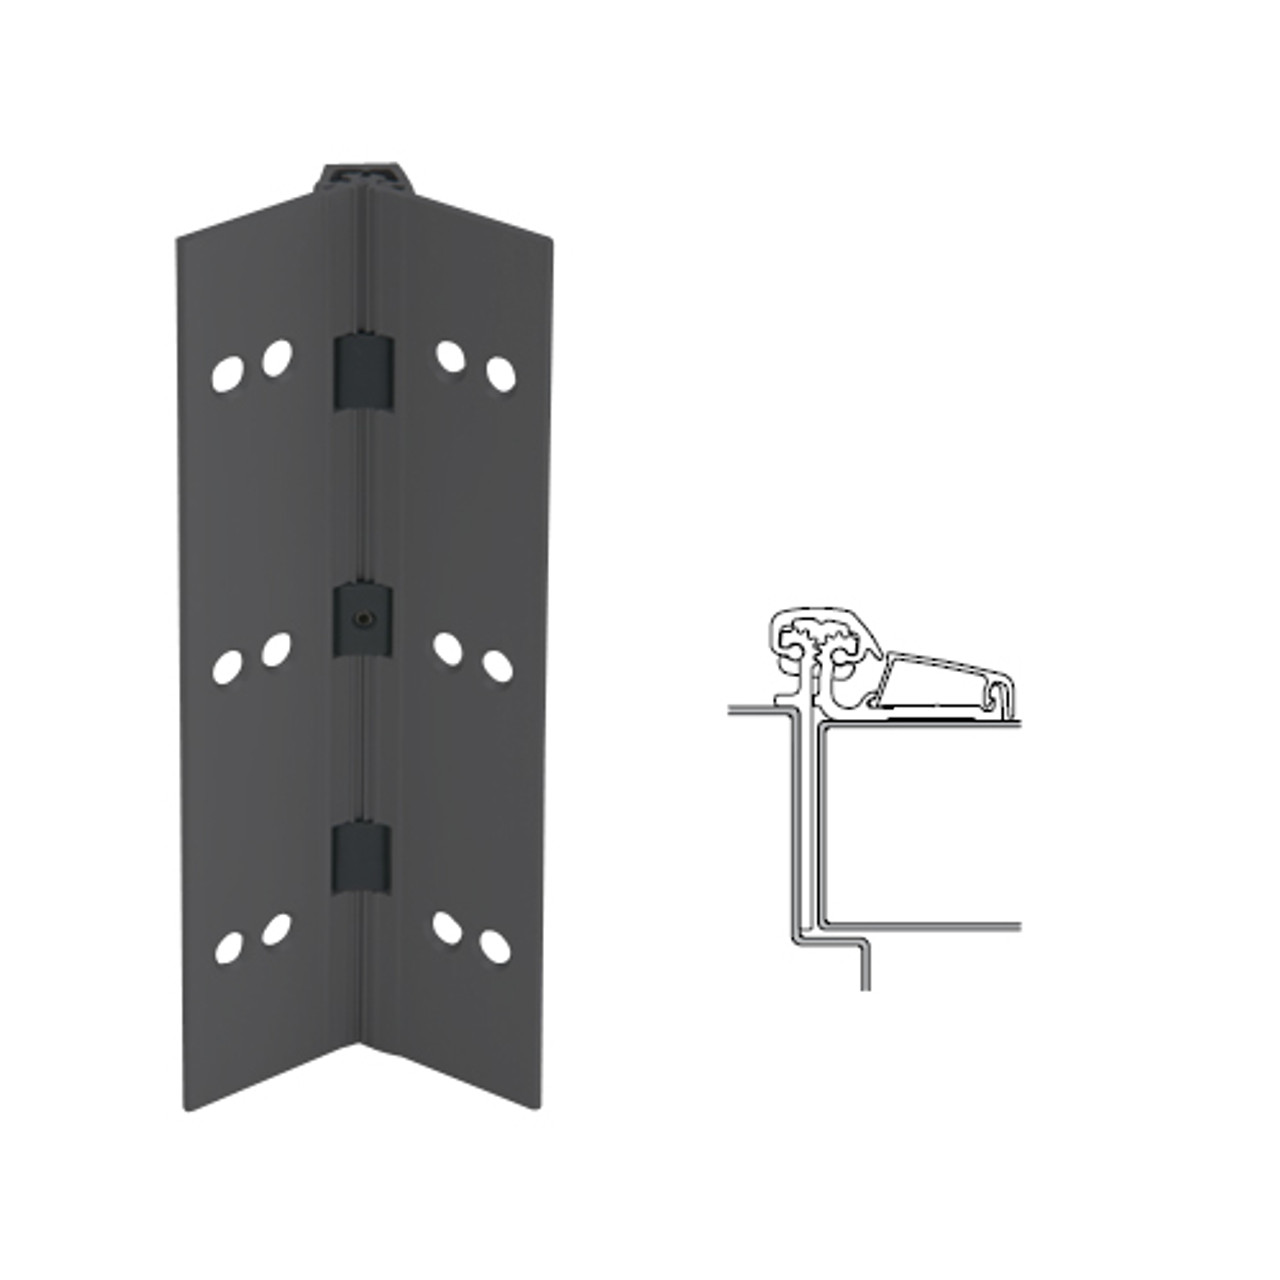 054XY-315AN-85-WD IVES Adjustable Half Surface Continuous Geared Hinges with Wood Screws in Anodized Black